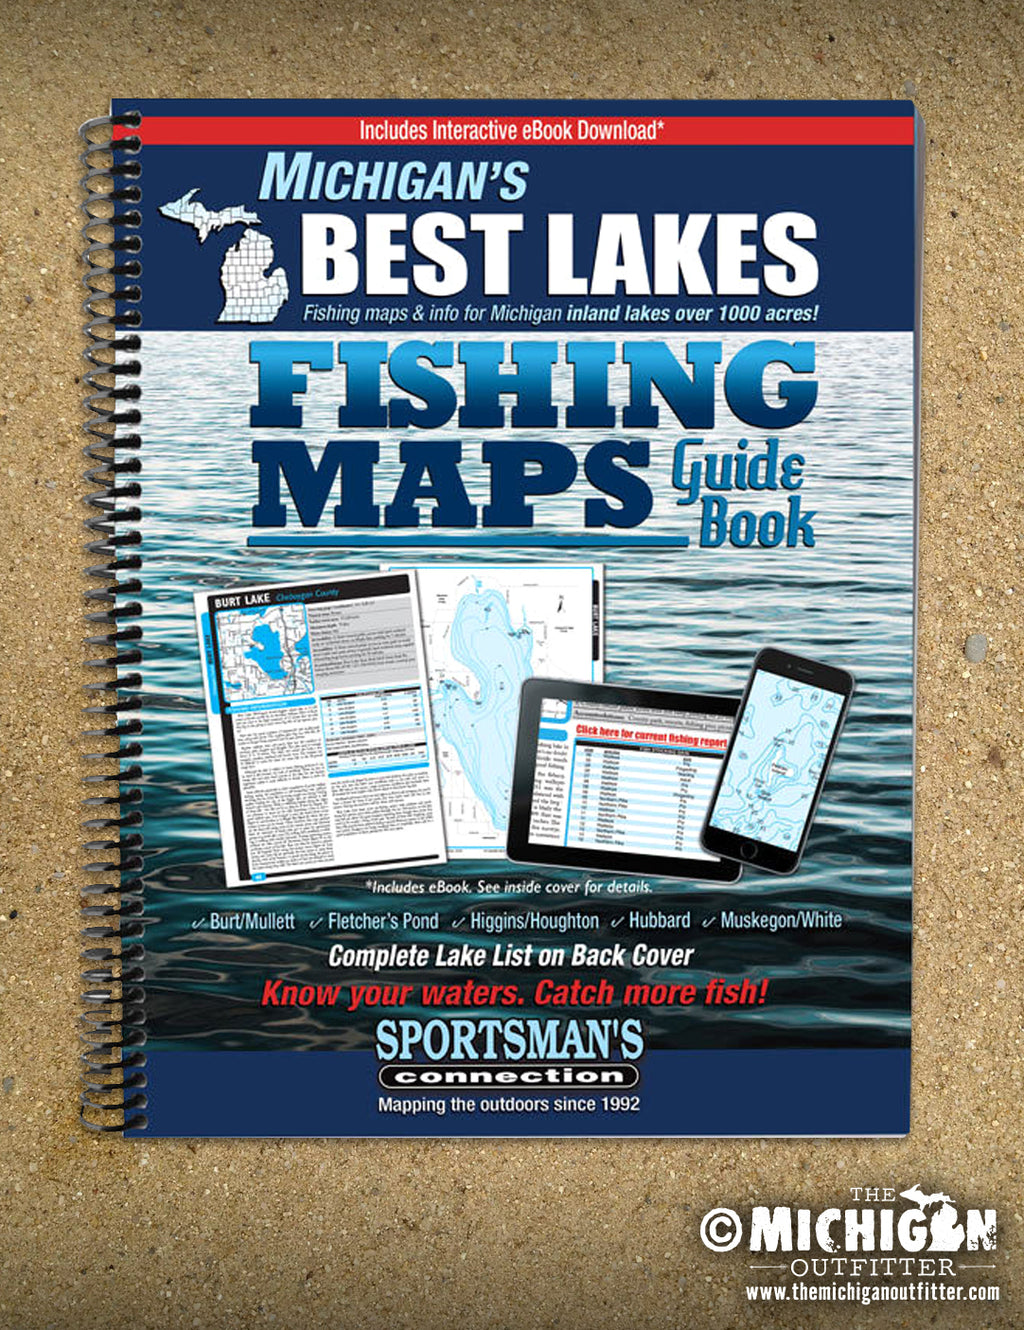 Michigan's Best Lakes Fishing Guide